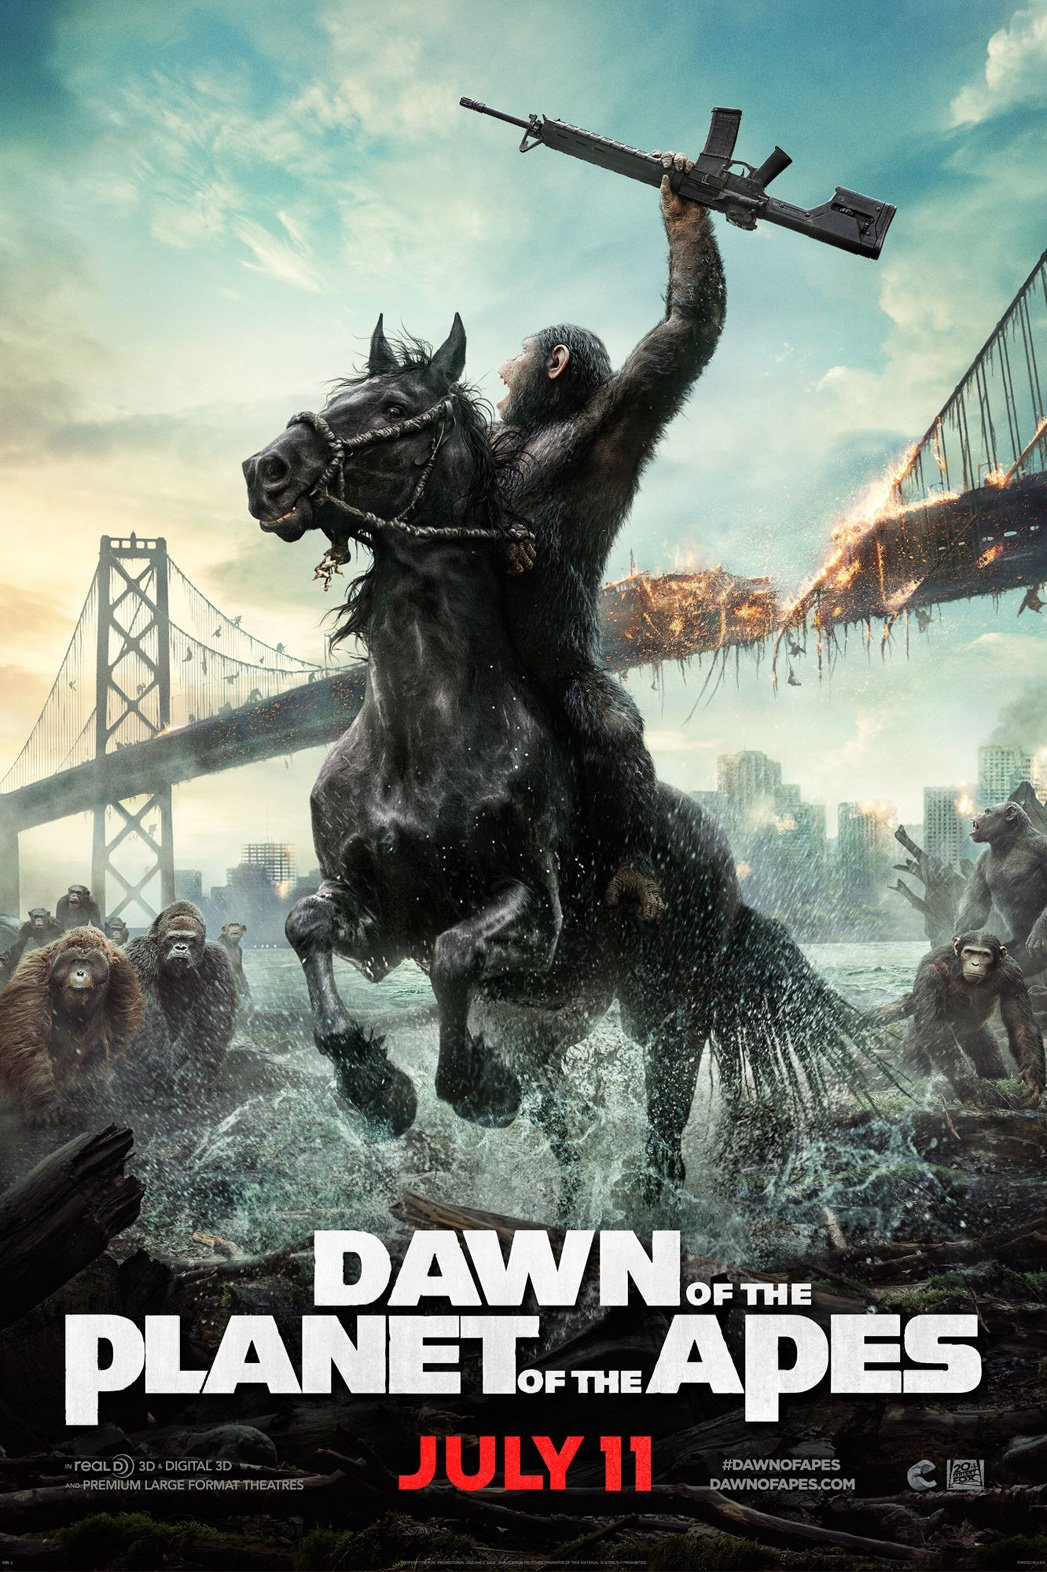 Film Review - DAWN OF THE PLANET OF THE APES - Nerdy Rotten Scoundrel